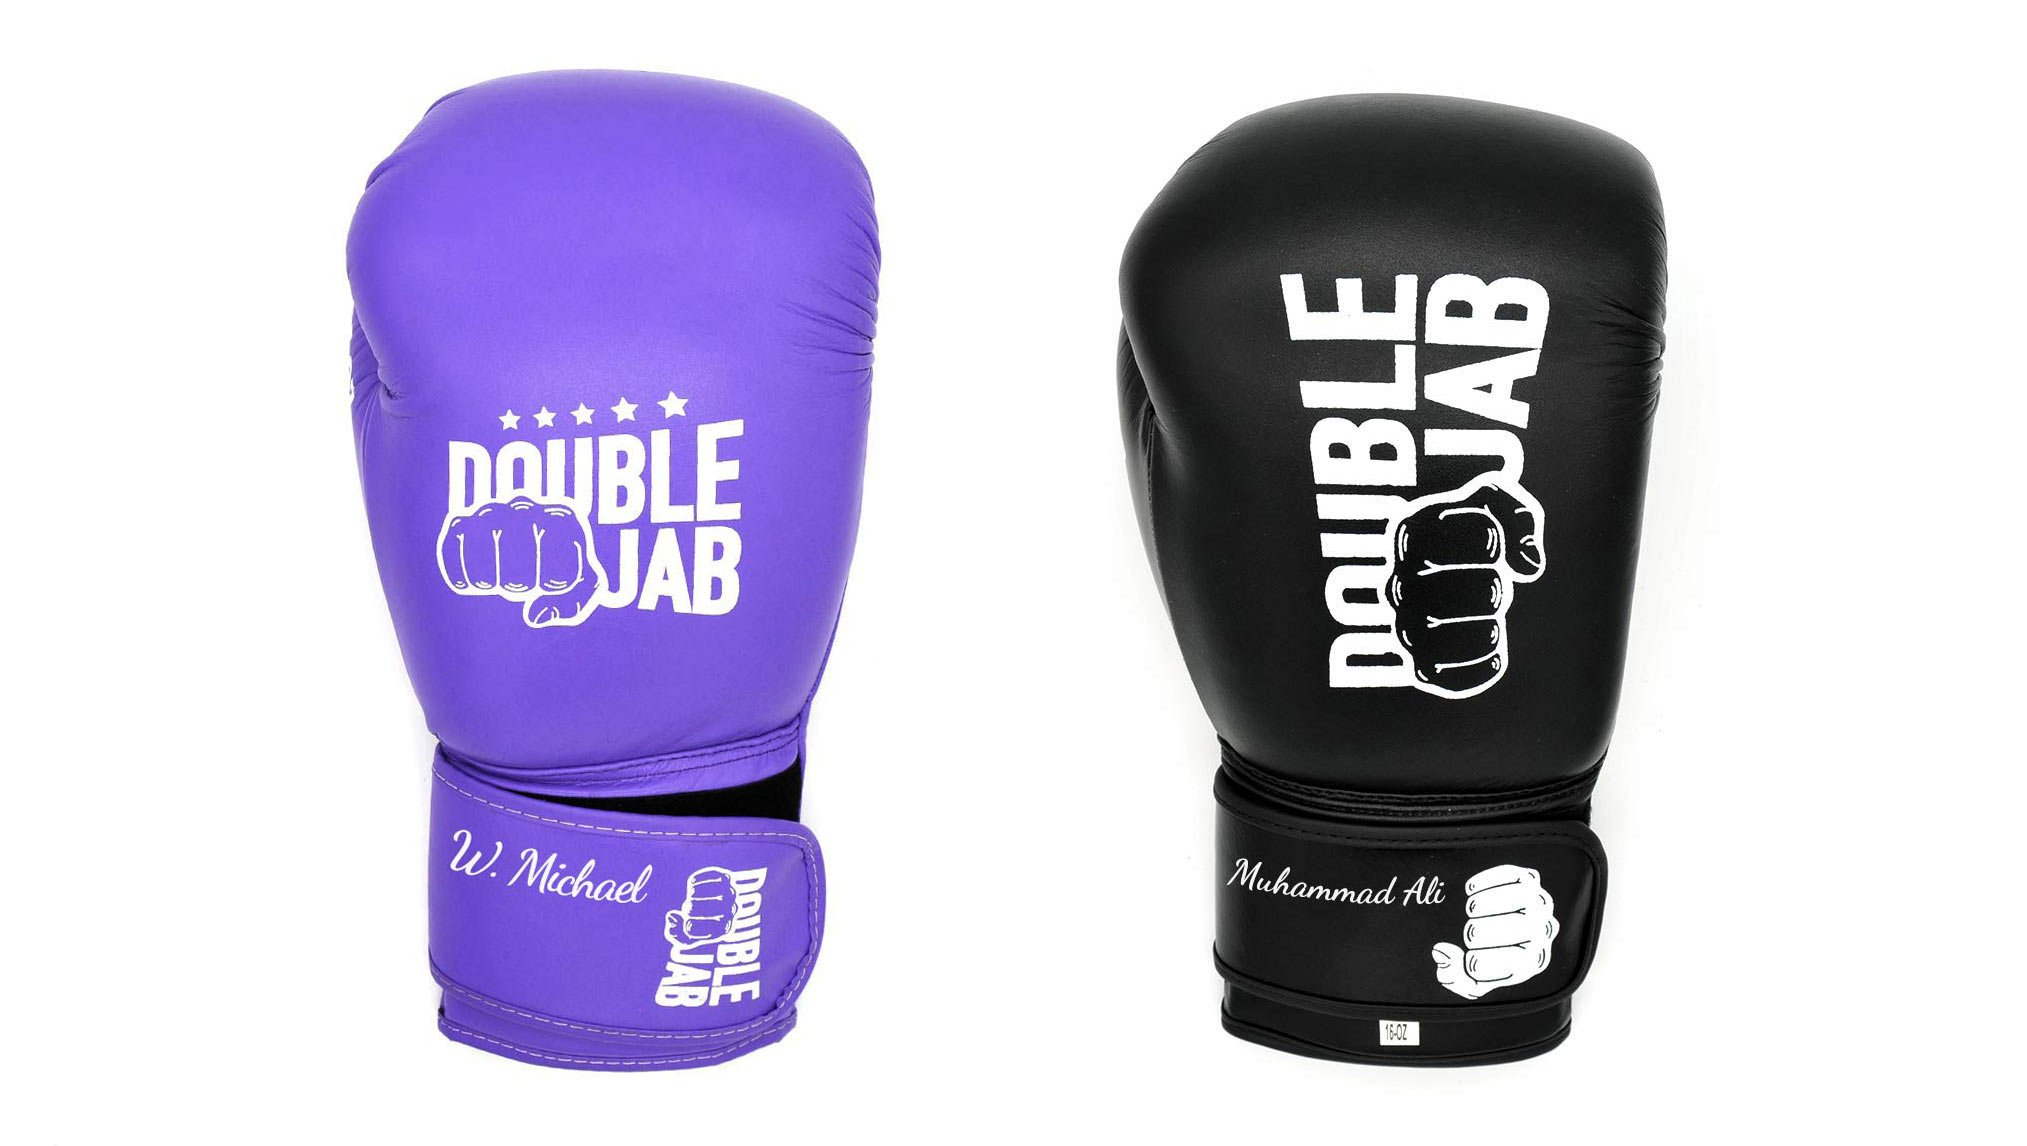 Double Jab custom